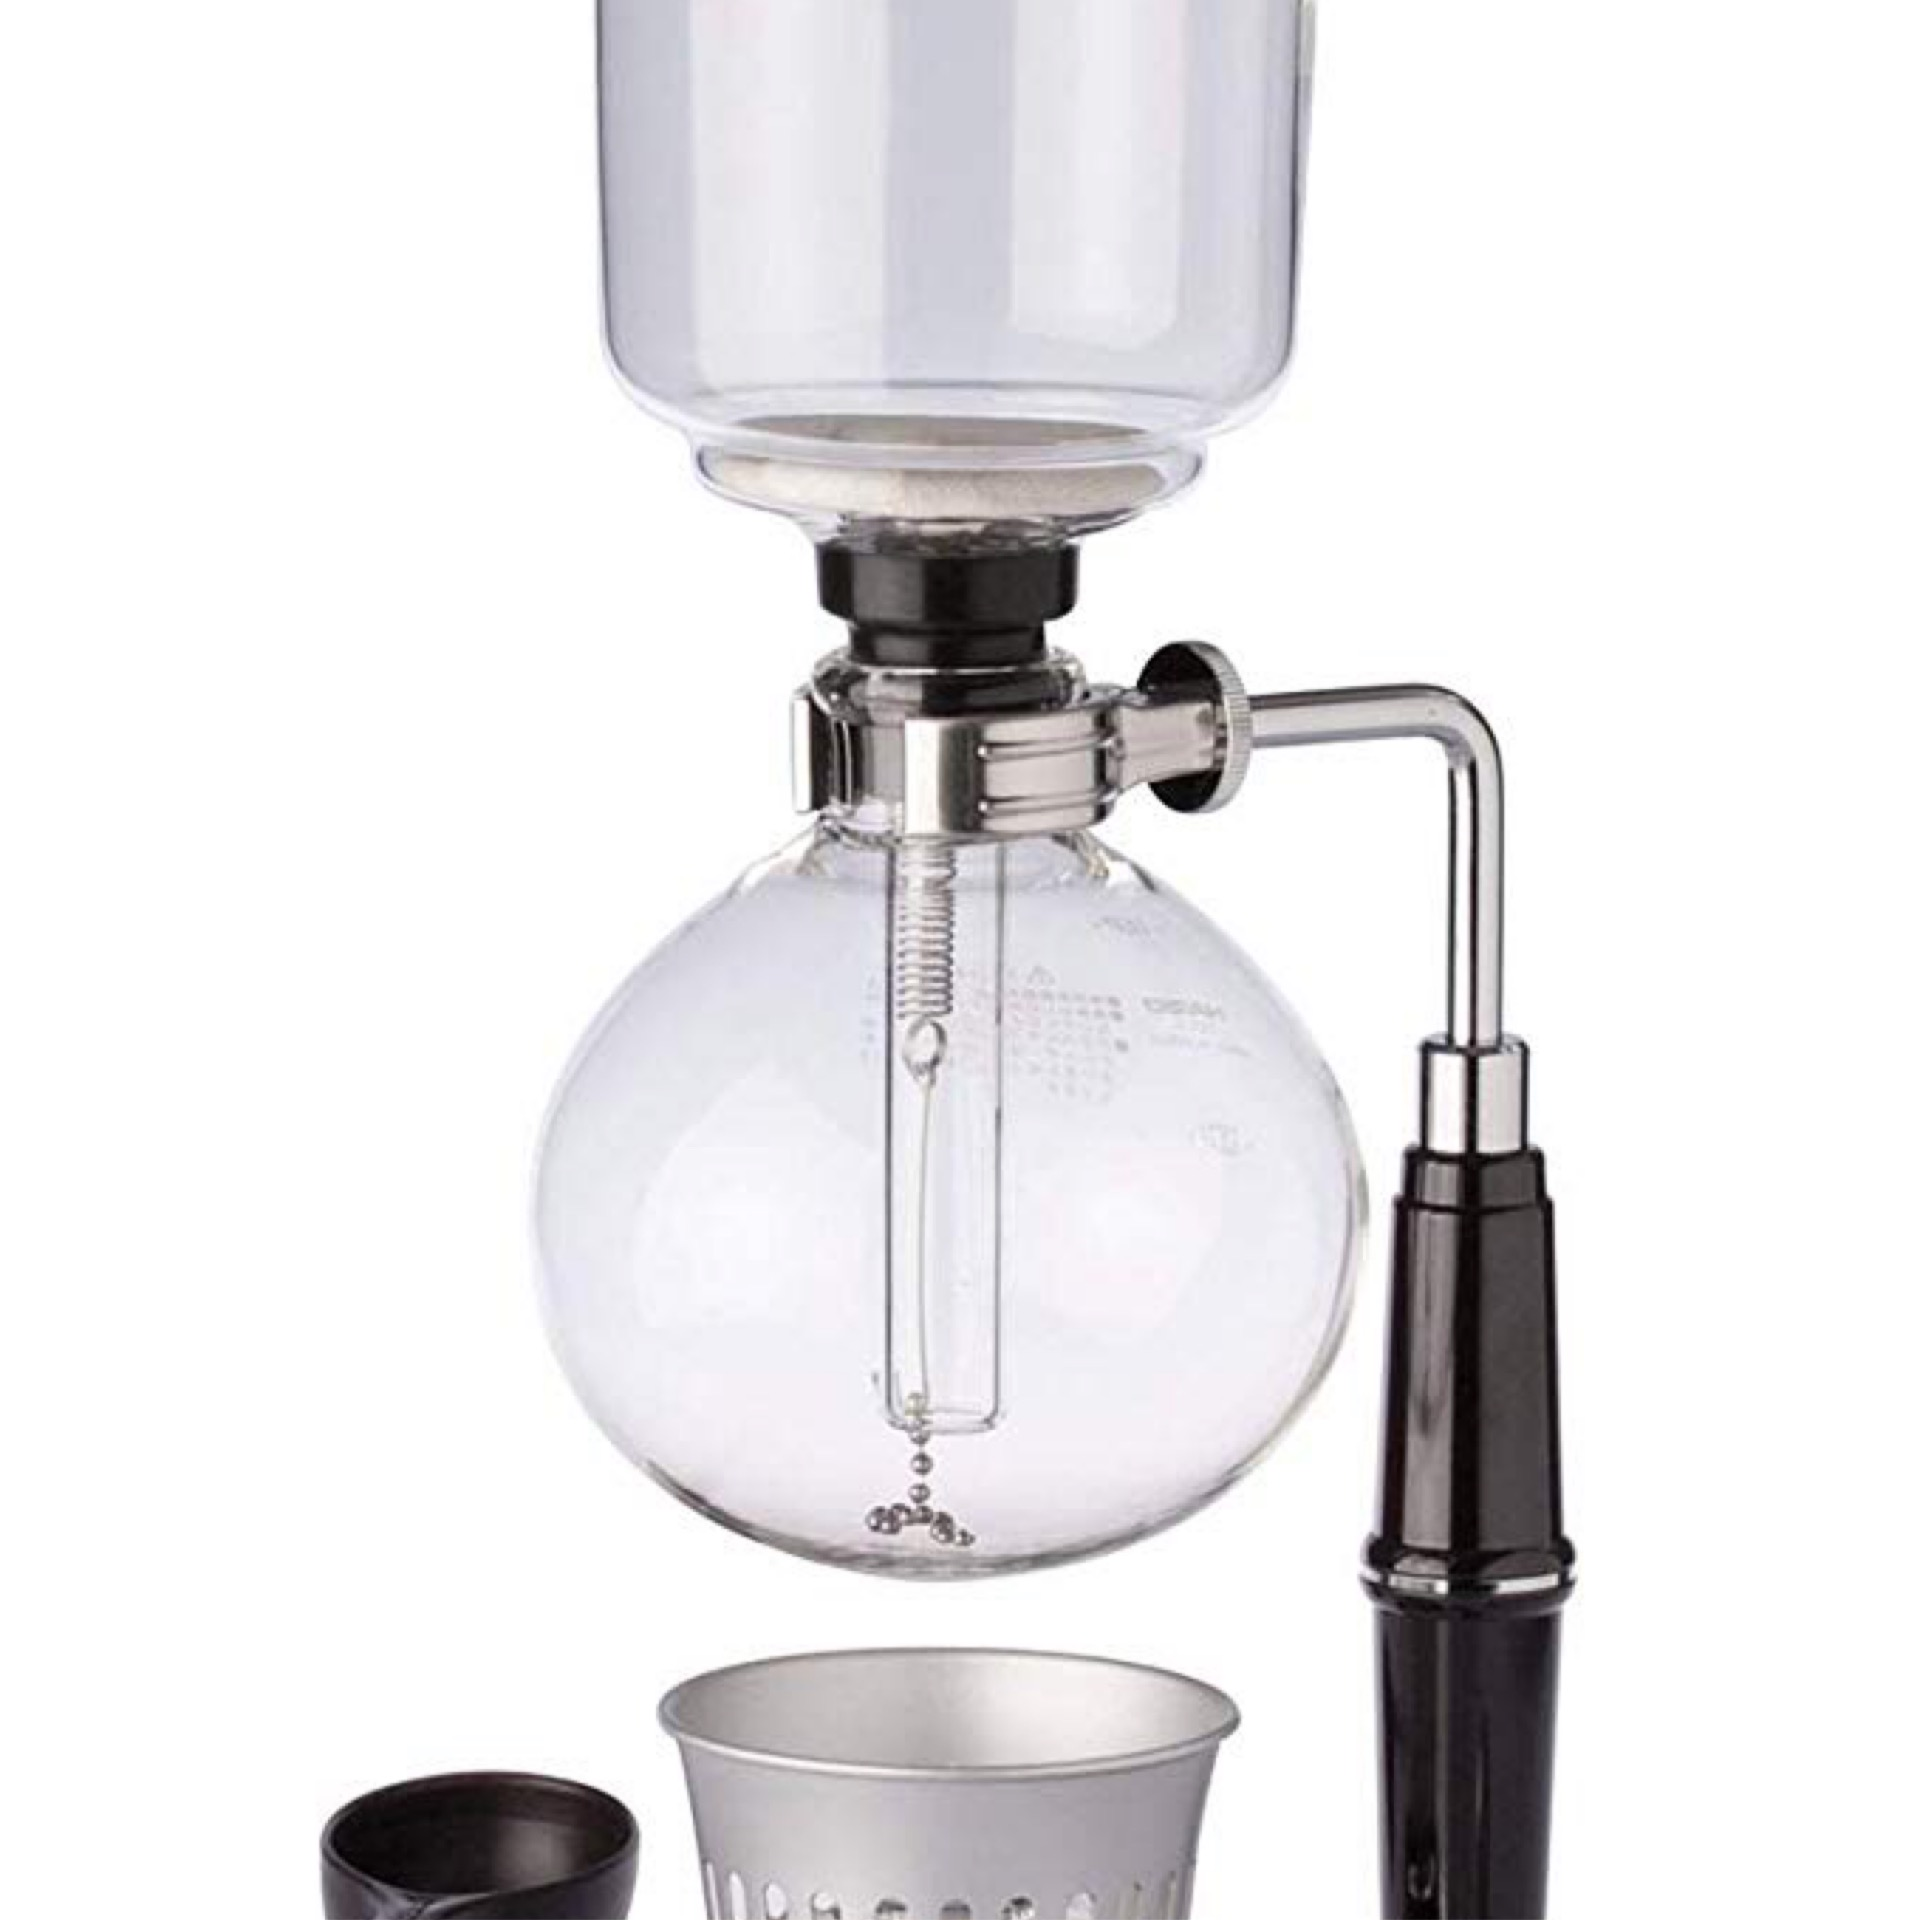 Syphon 5-cup